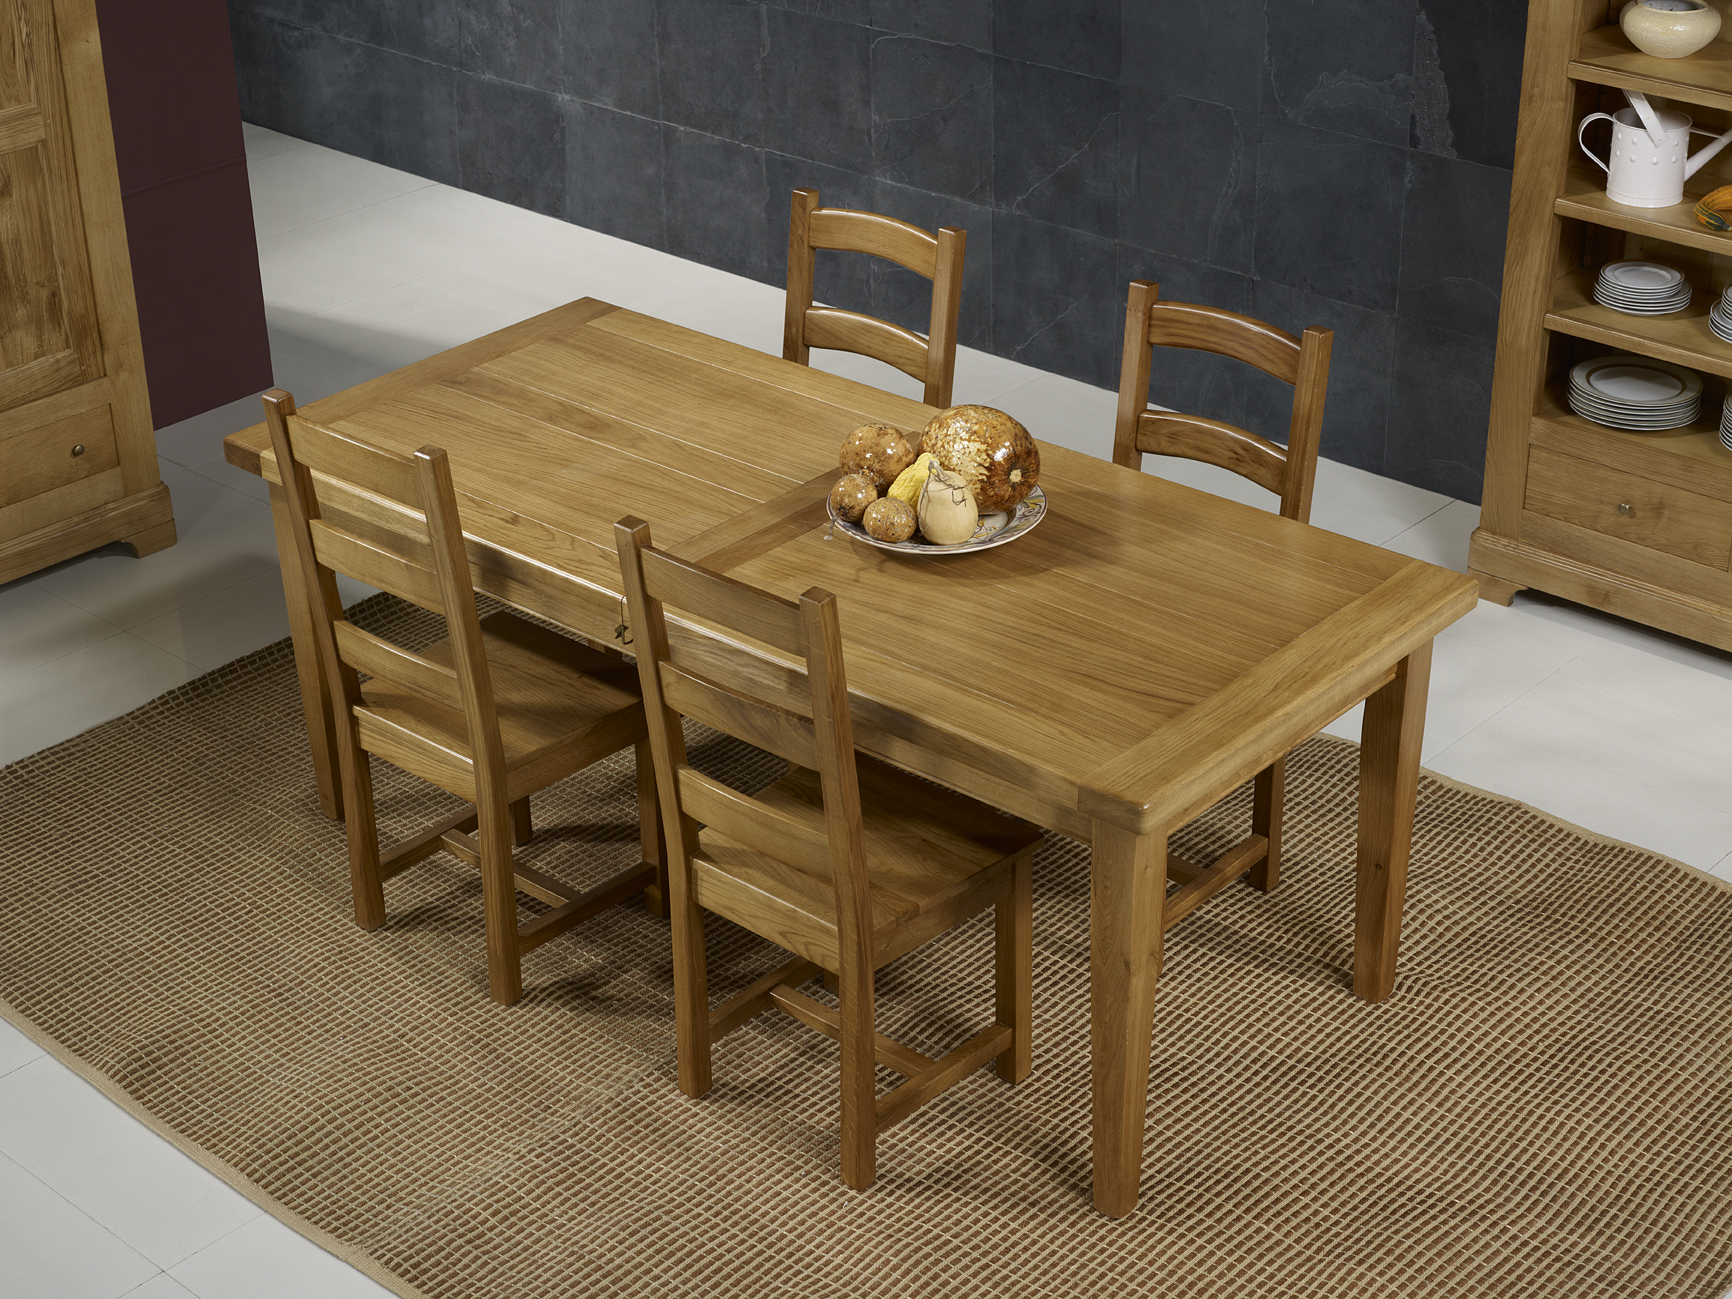 Table de ferme rectangulaire francois en ch ne massif 220 100 2 allonges de 45 cm meuble en - Table bois massif ...